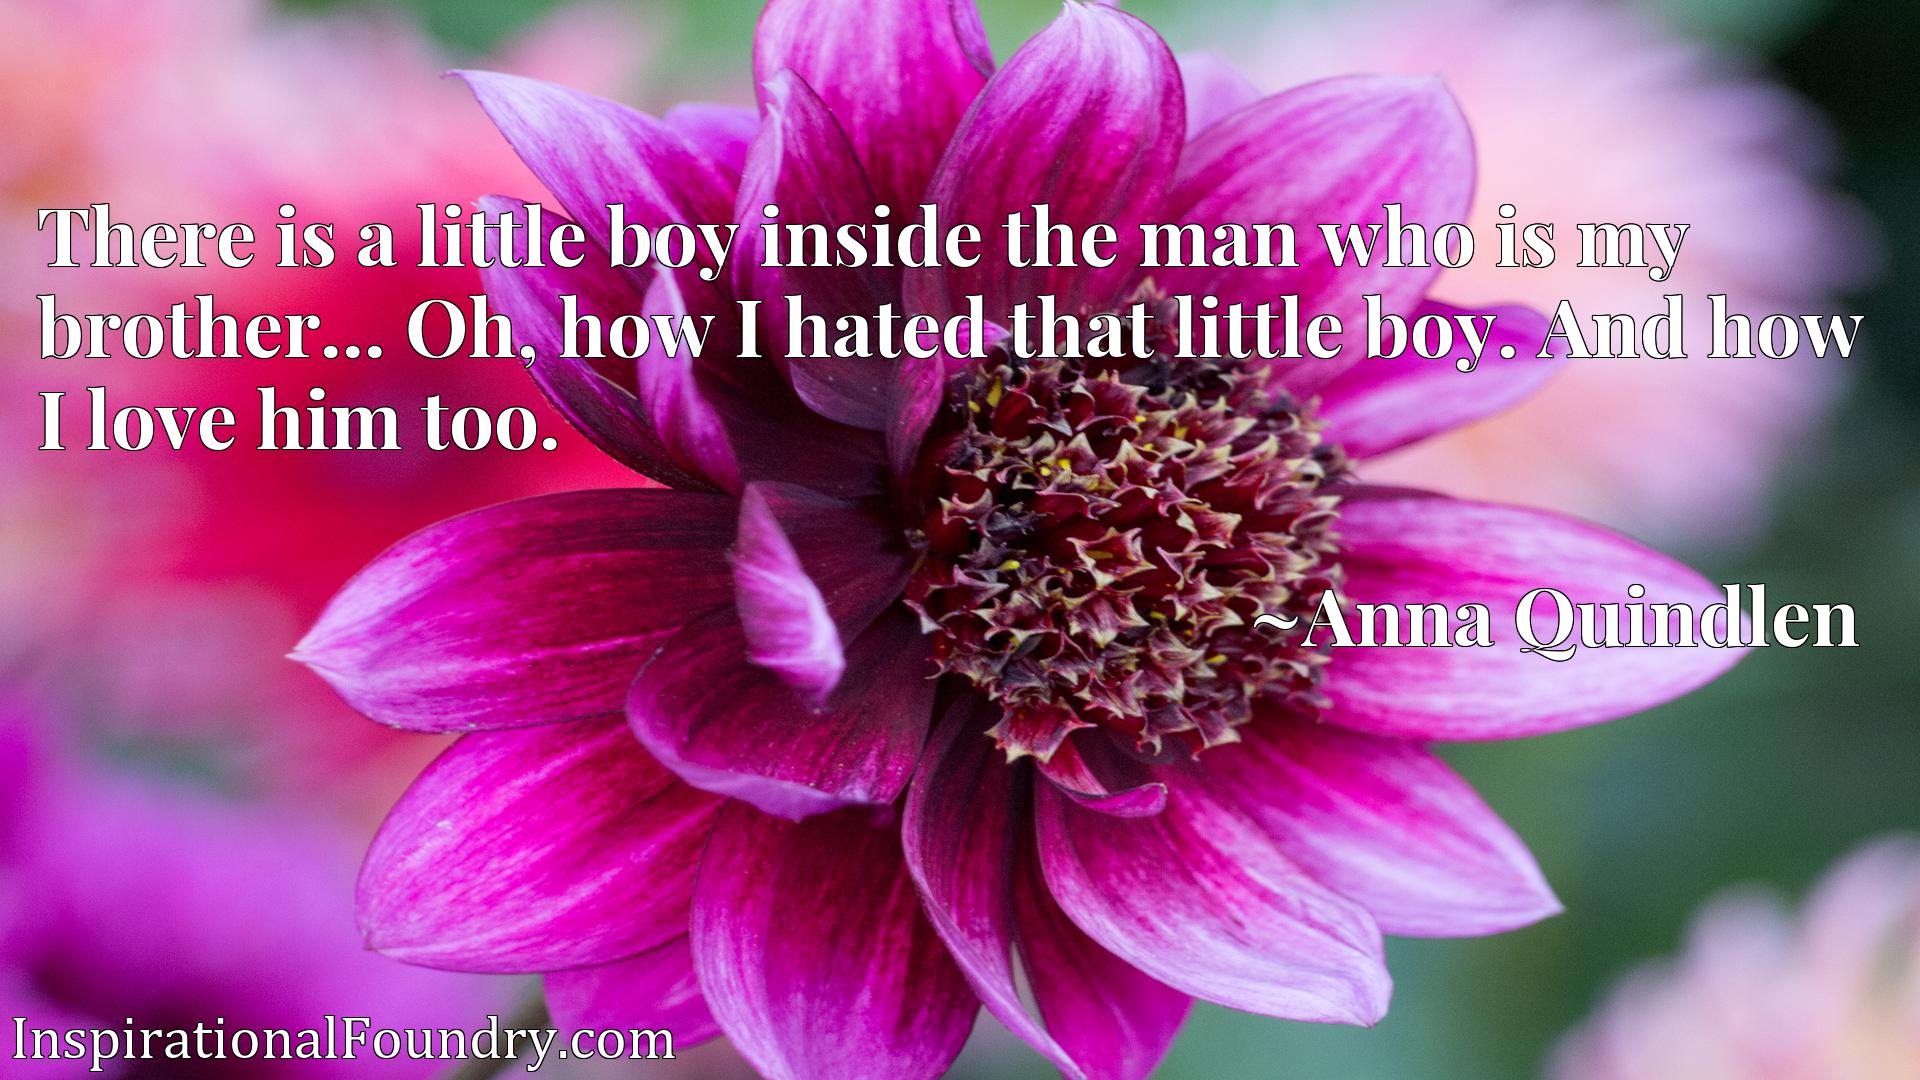 There is a little boy inside the man who is my brother... Oh, how I hated that little boy. And how I love him too.